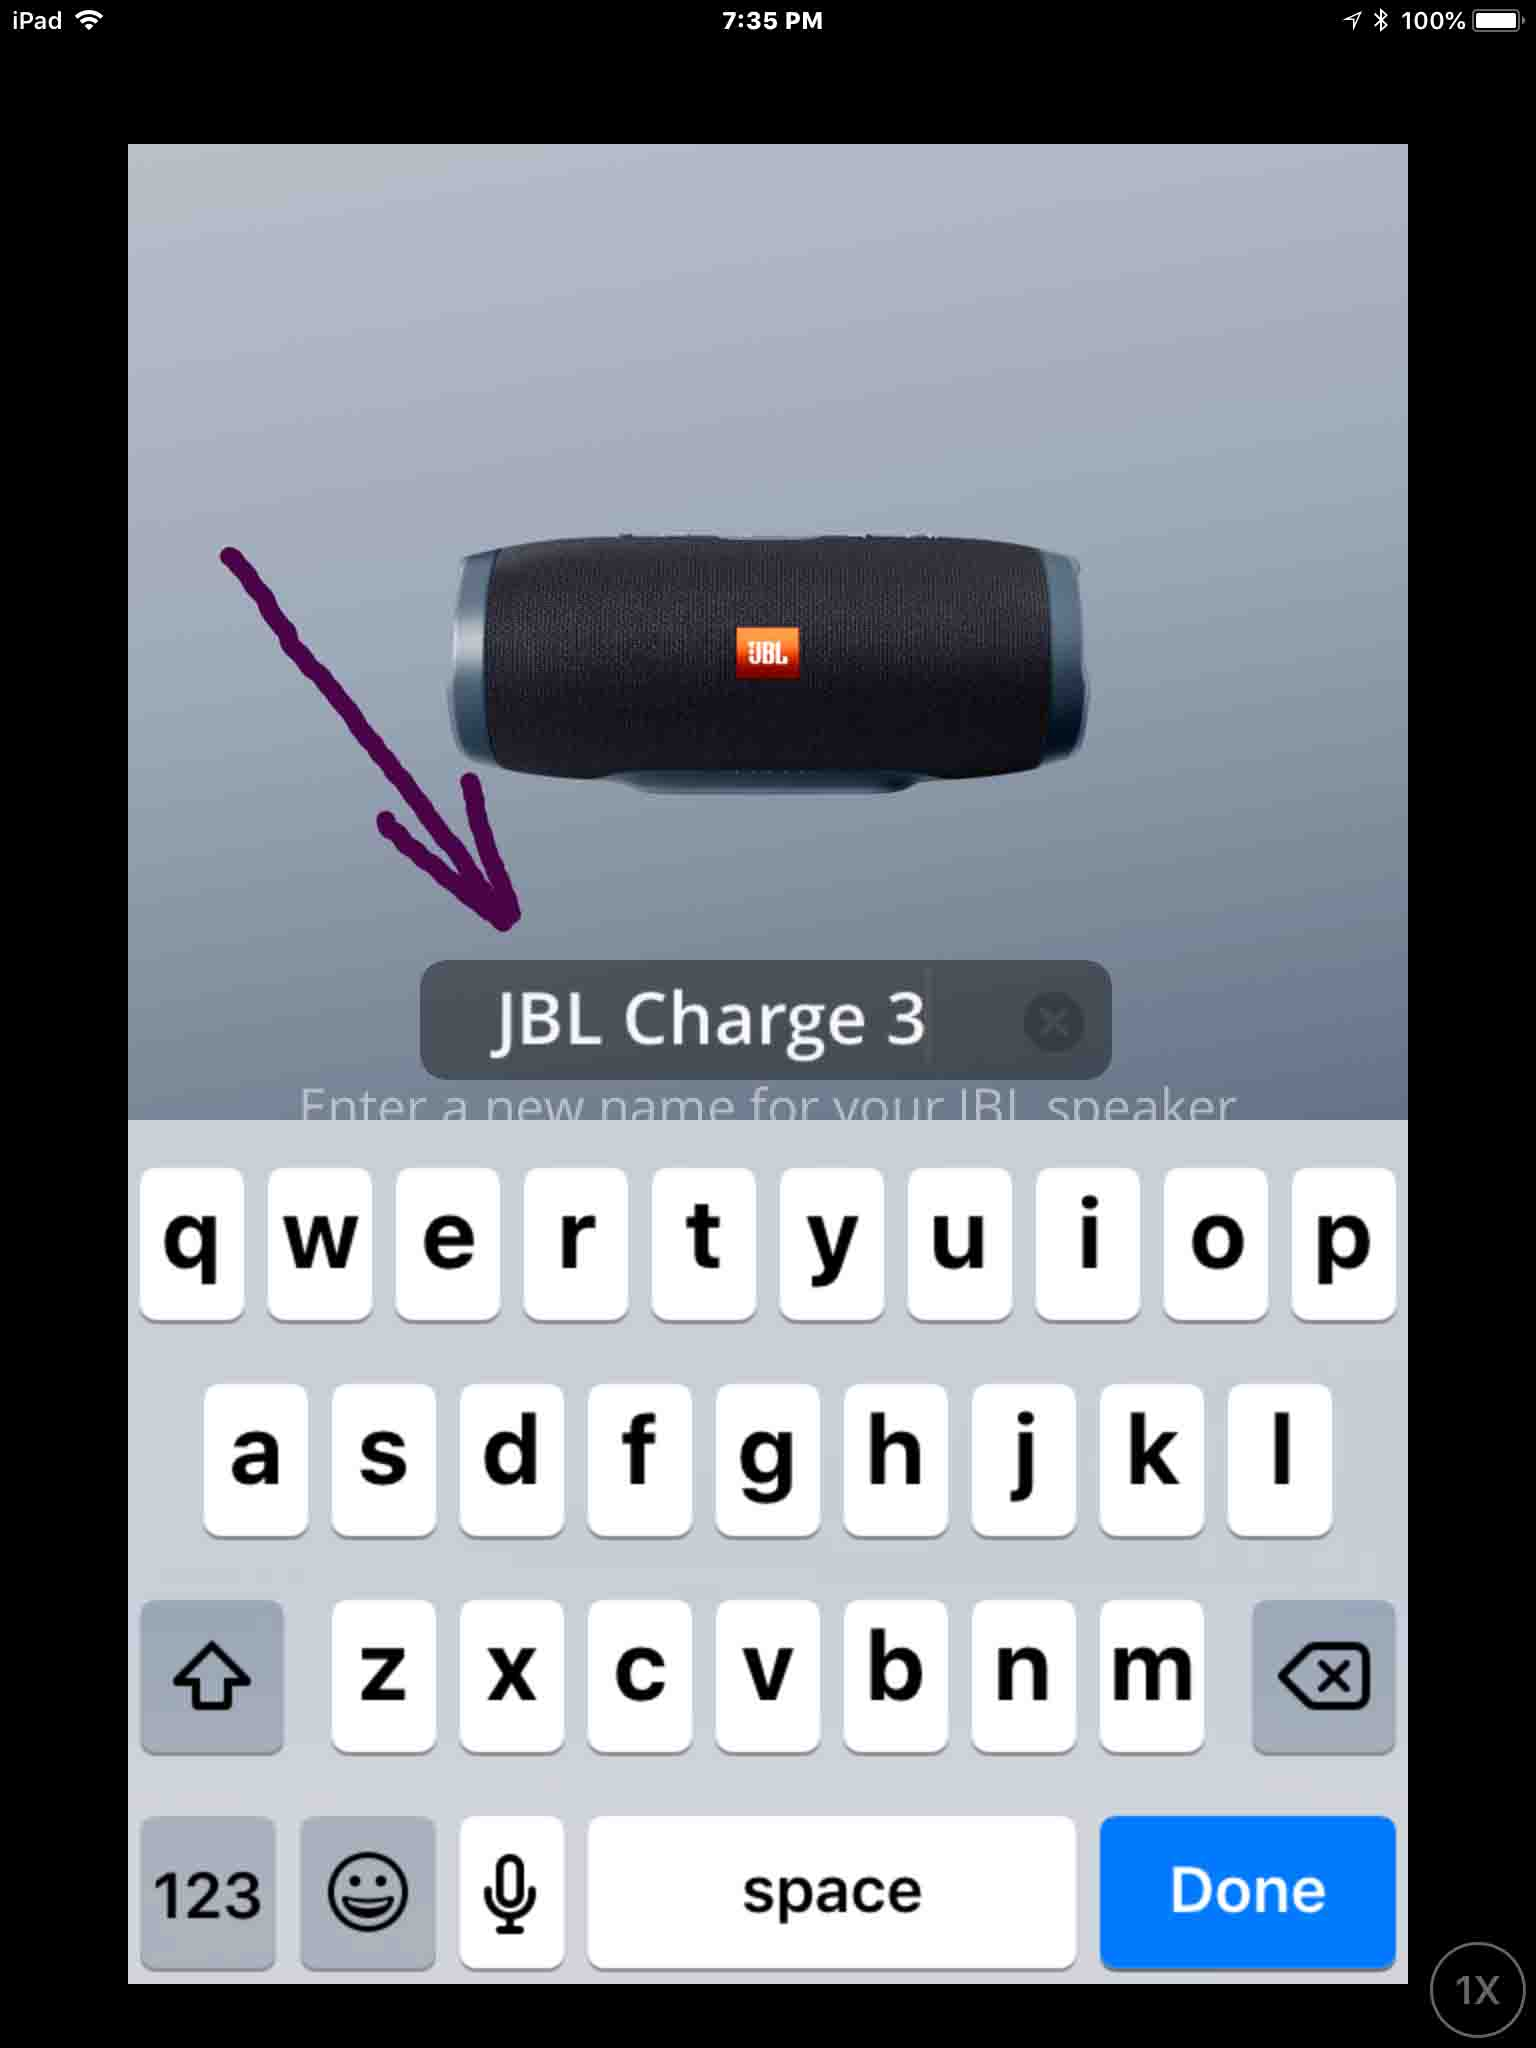 jbl application for charge 3